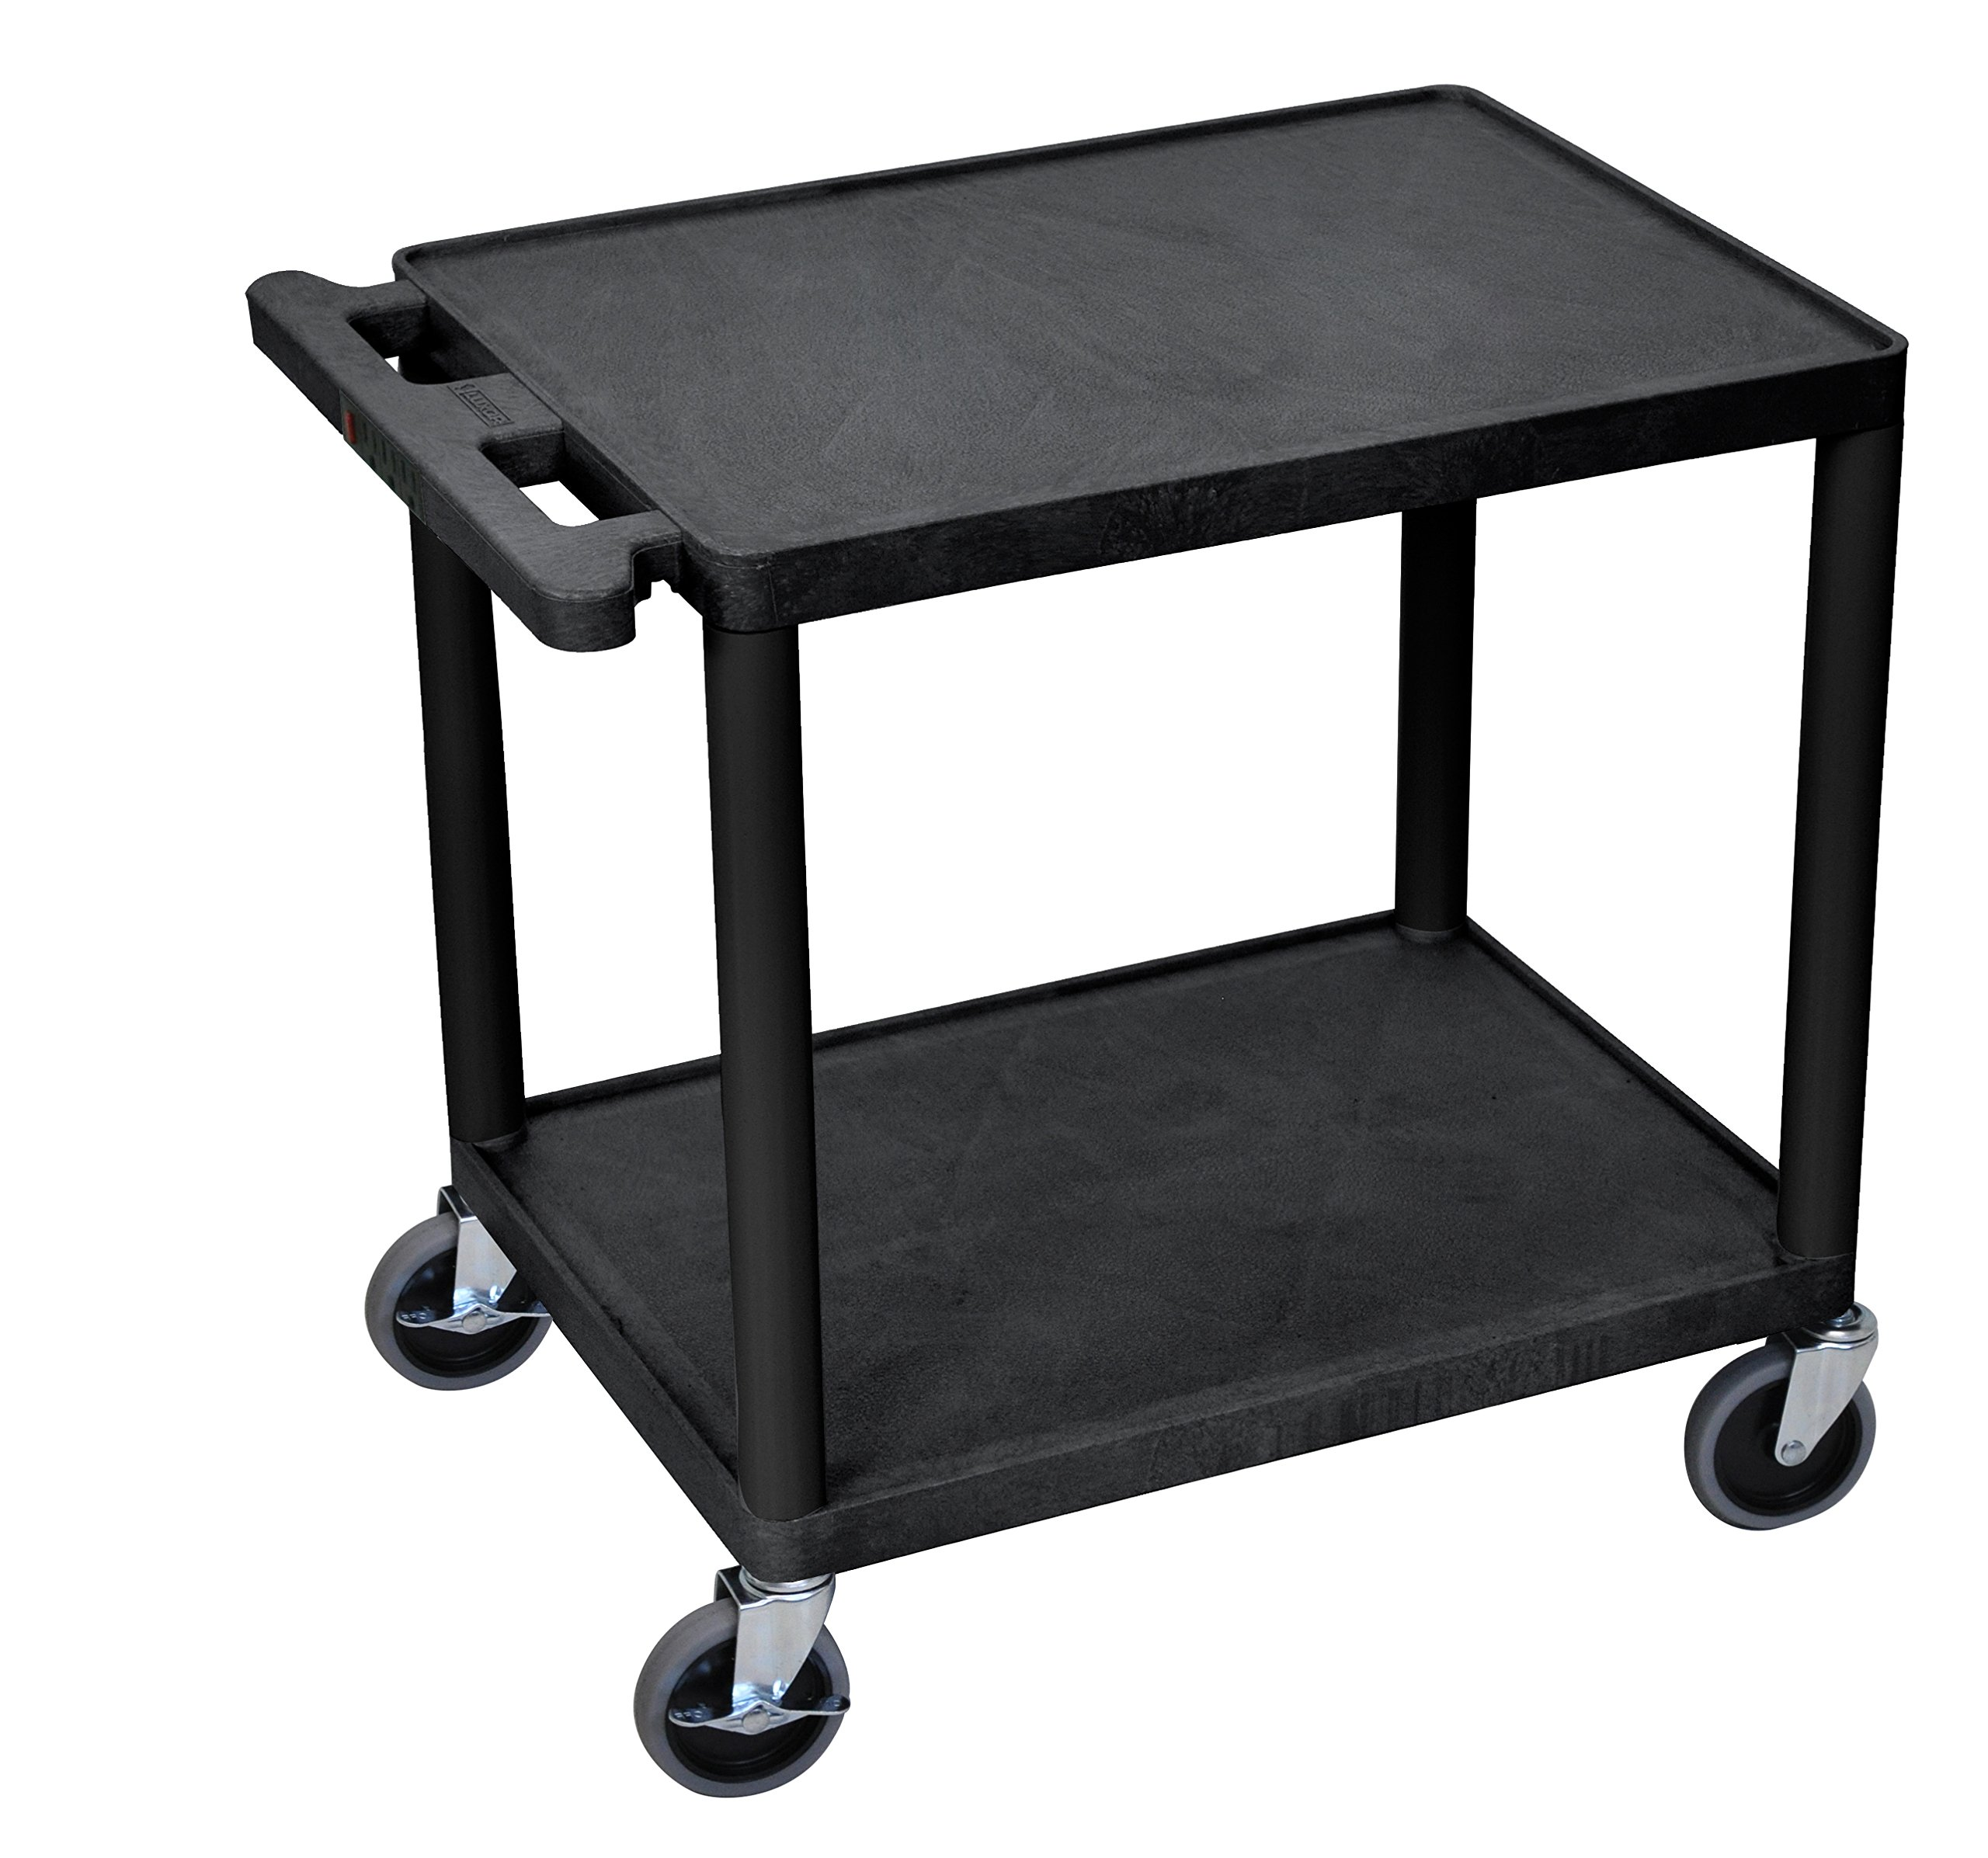 Offex Mobile 2 Shelf Adjustable Storage Utility Cart with Electric, 4 Casters - Black (OF-LP26E-B)